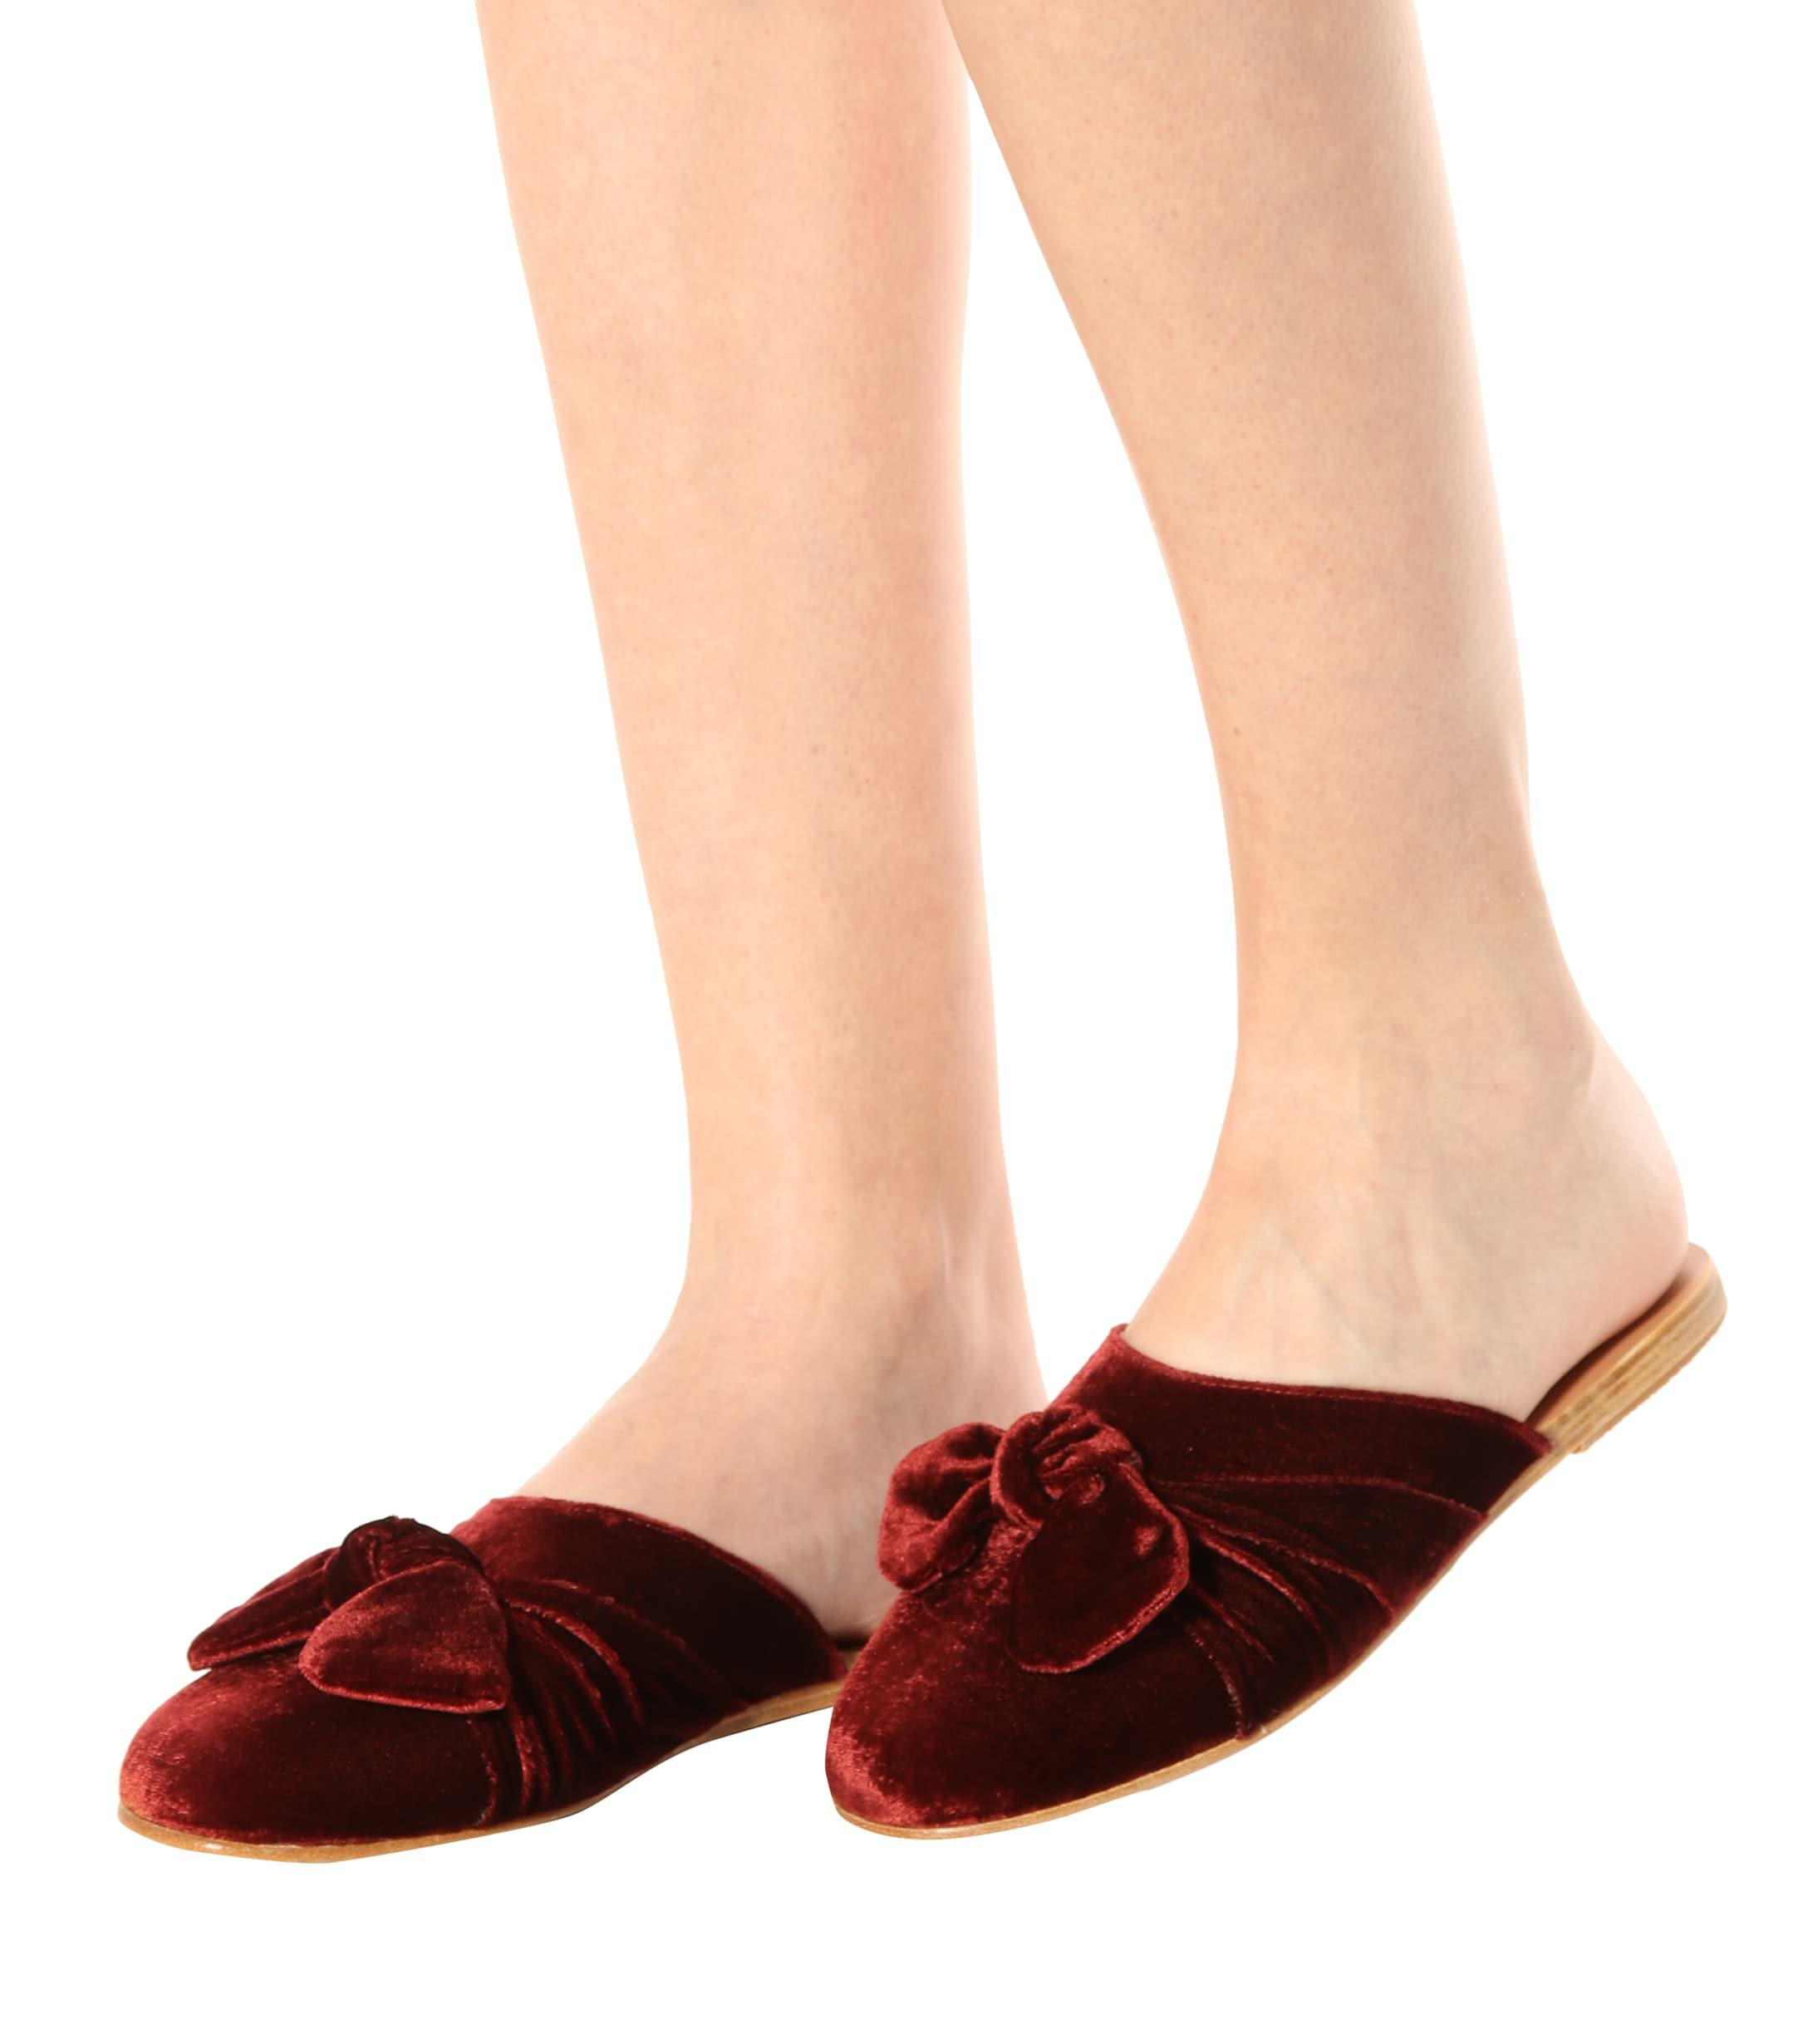 04a229c2a ancient-greek-sandals-velvet-bordeaux-Pasoumi-Bow-Velvet-Slippers.jpeg